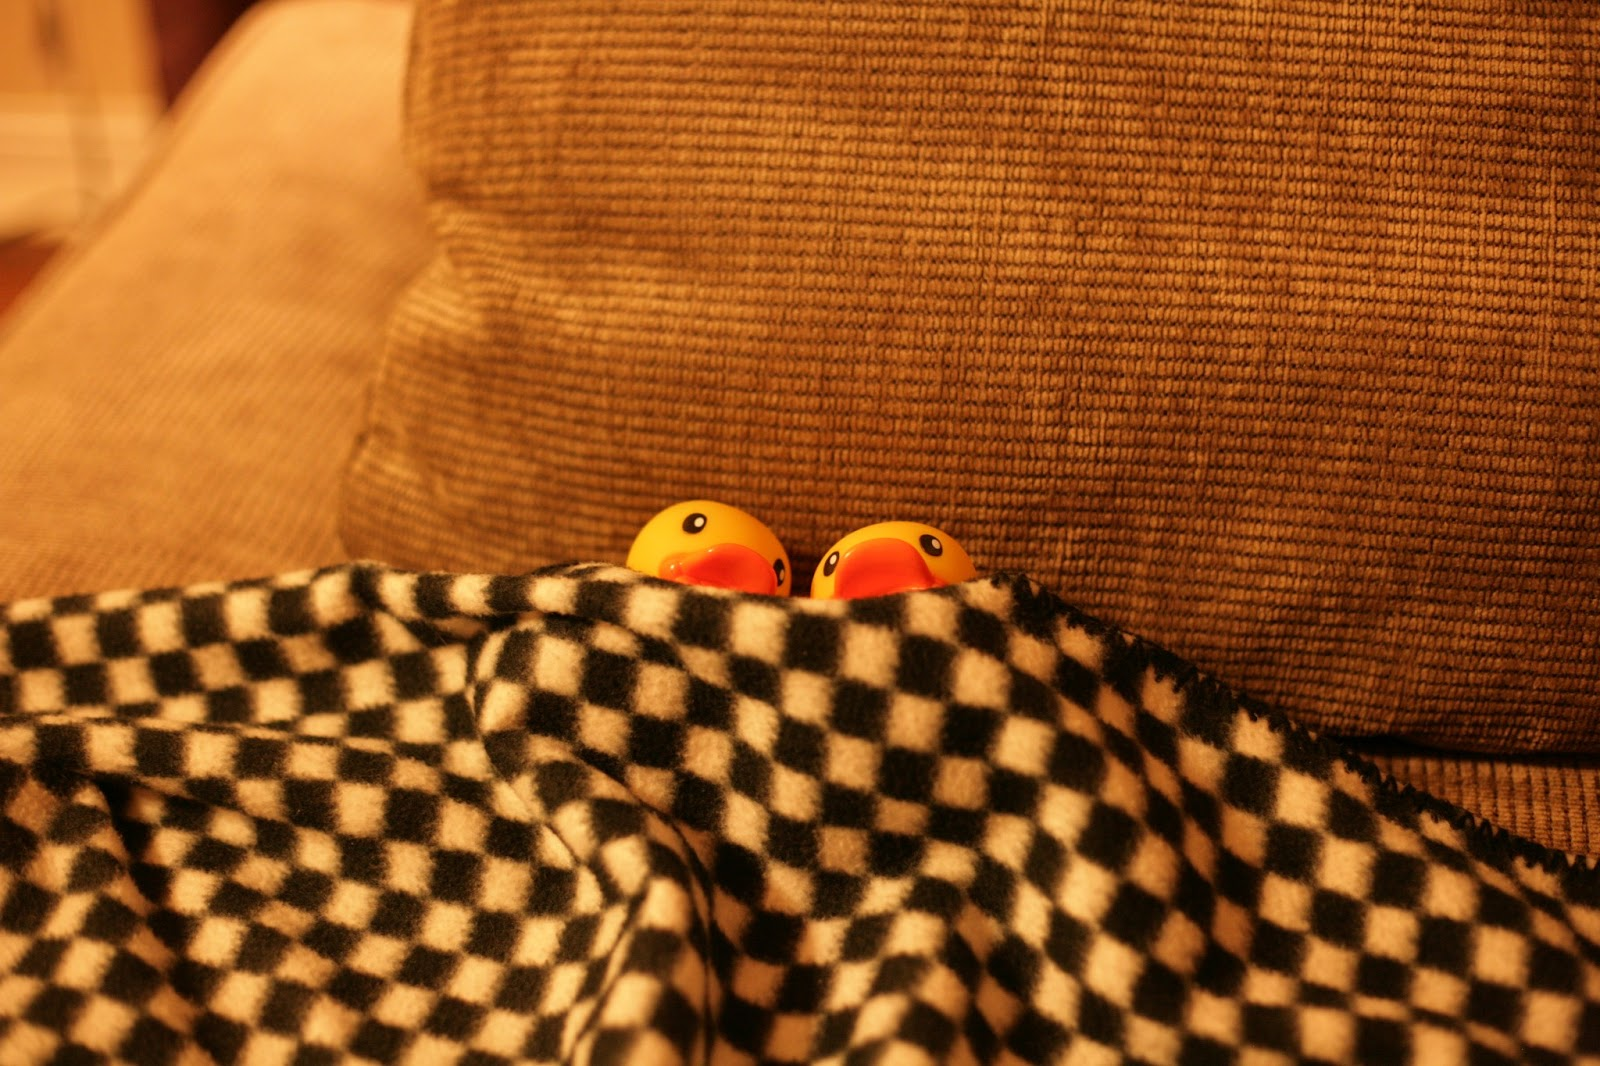 Rubber Duckies in Bed